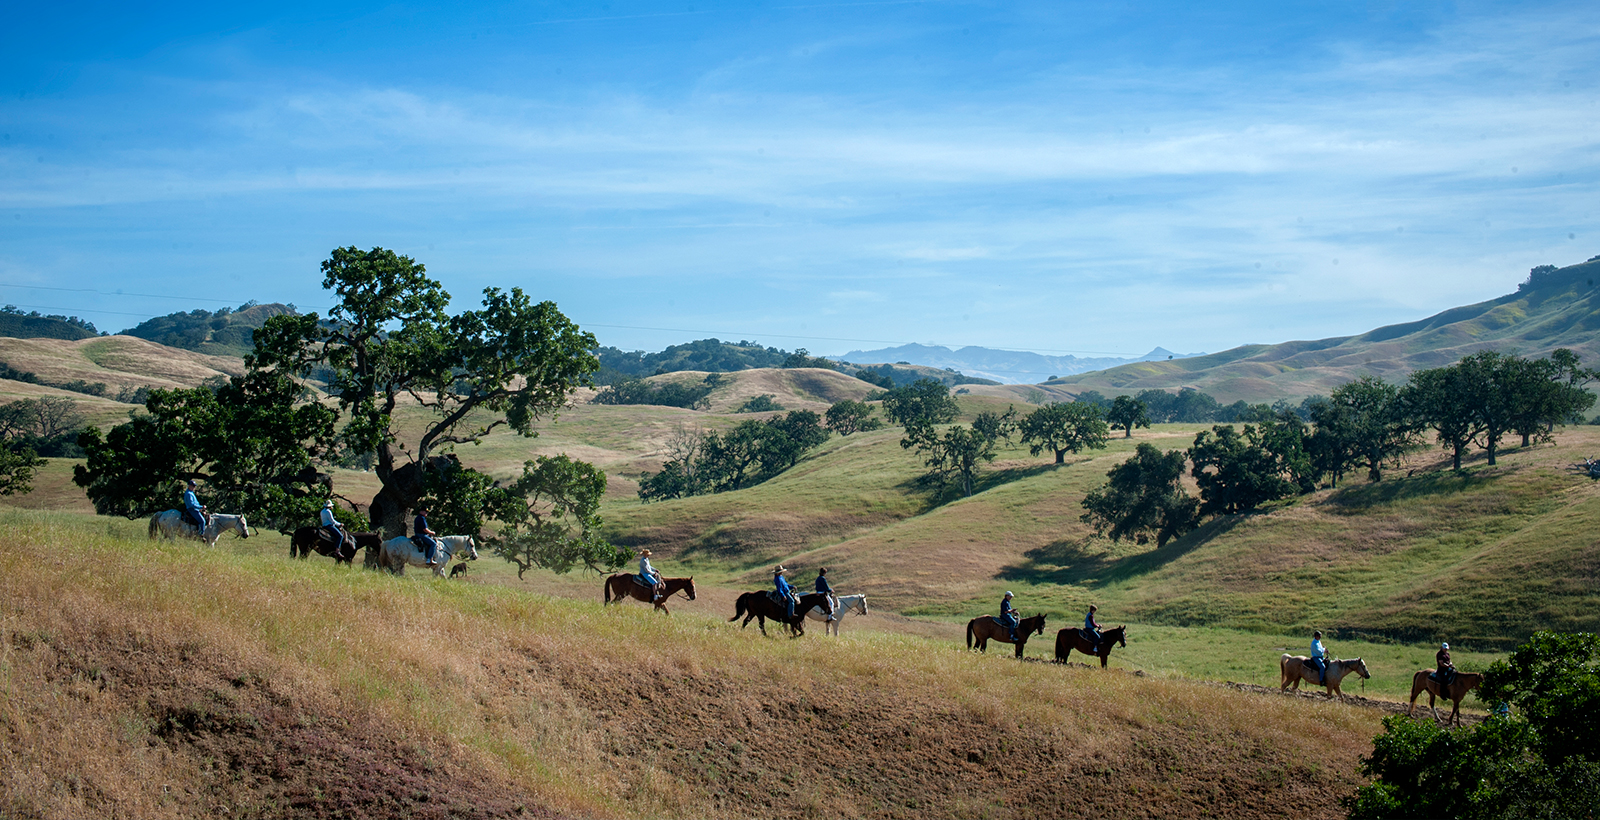 Horseback riding at The Alisal